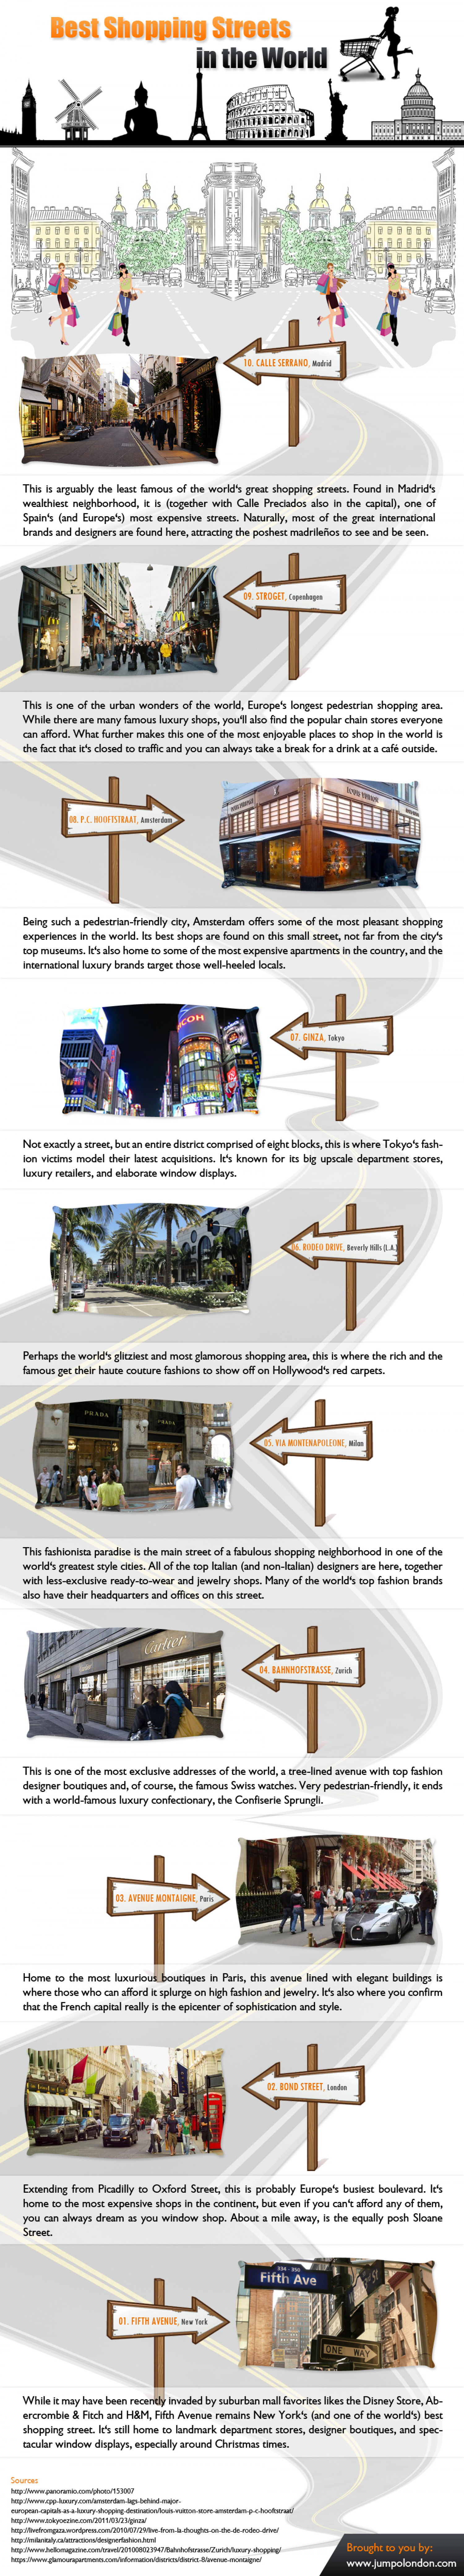 Best Shopping Streets in the World Infographic